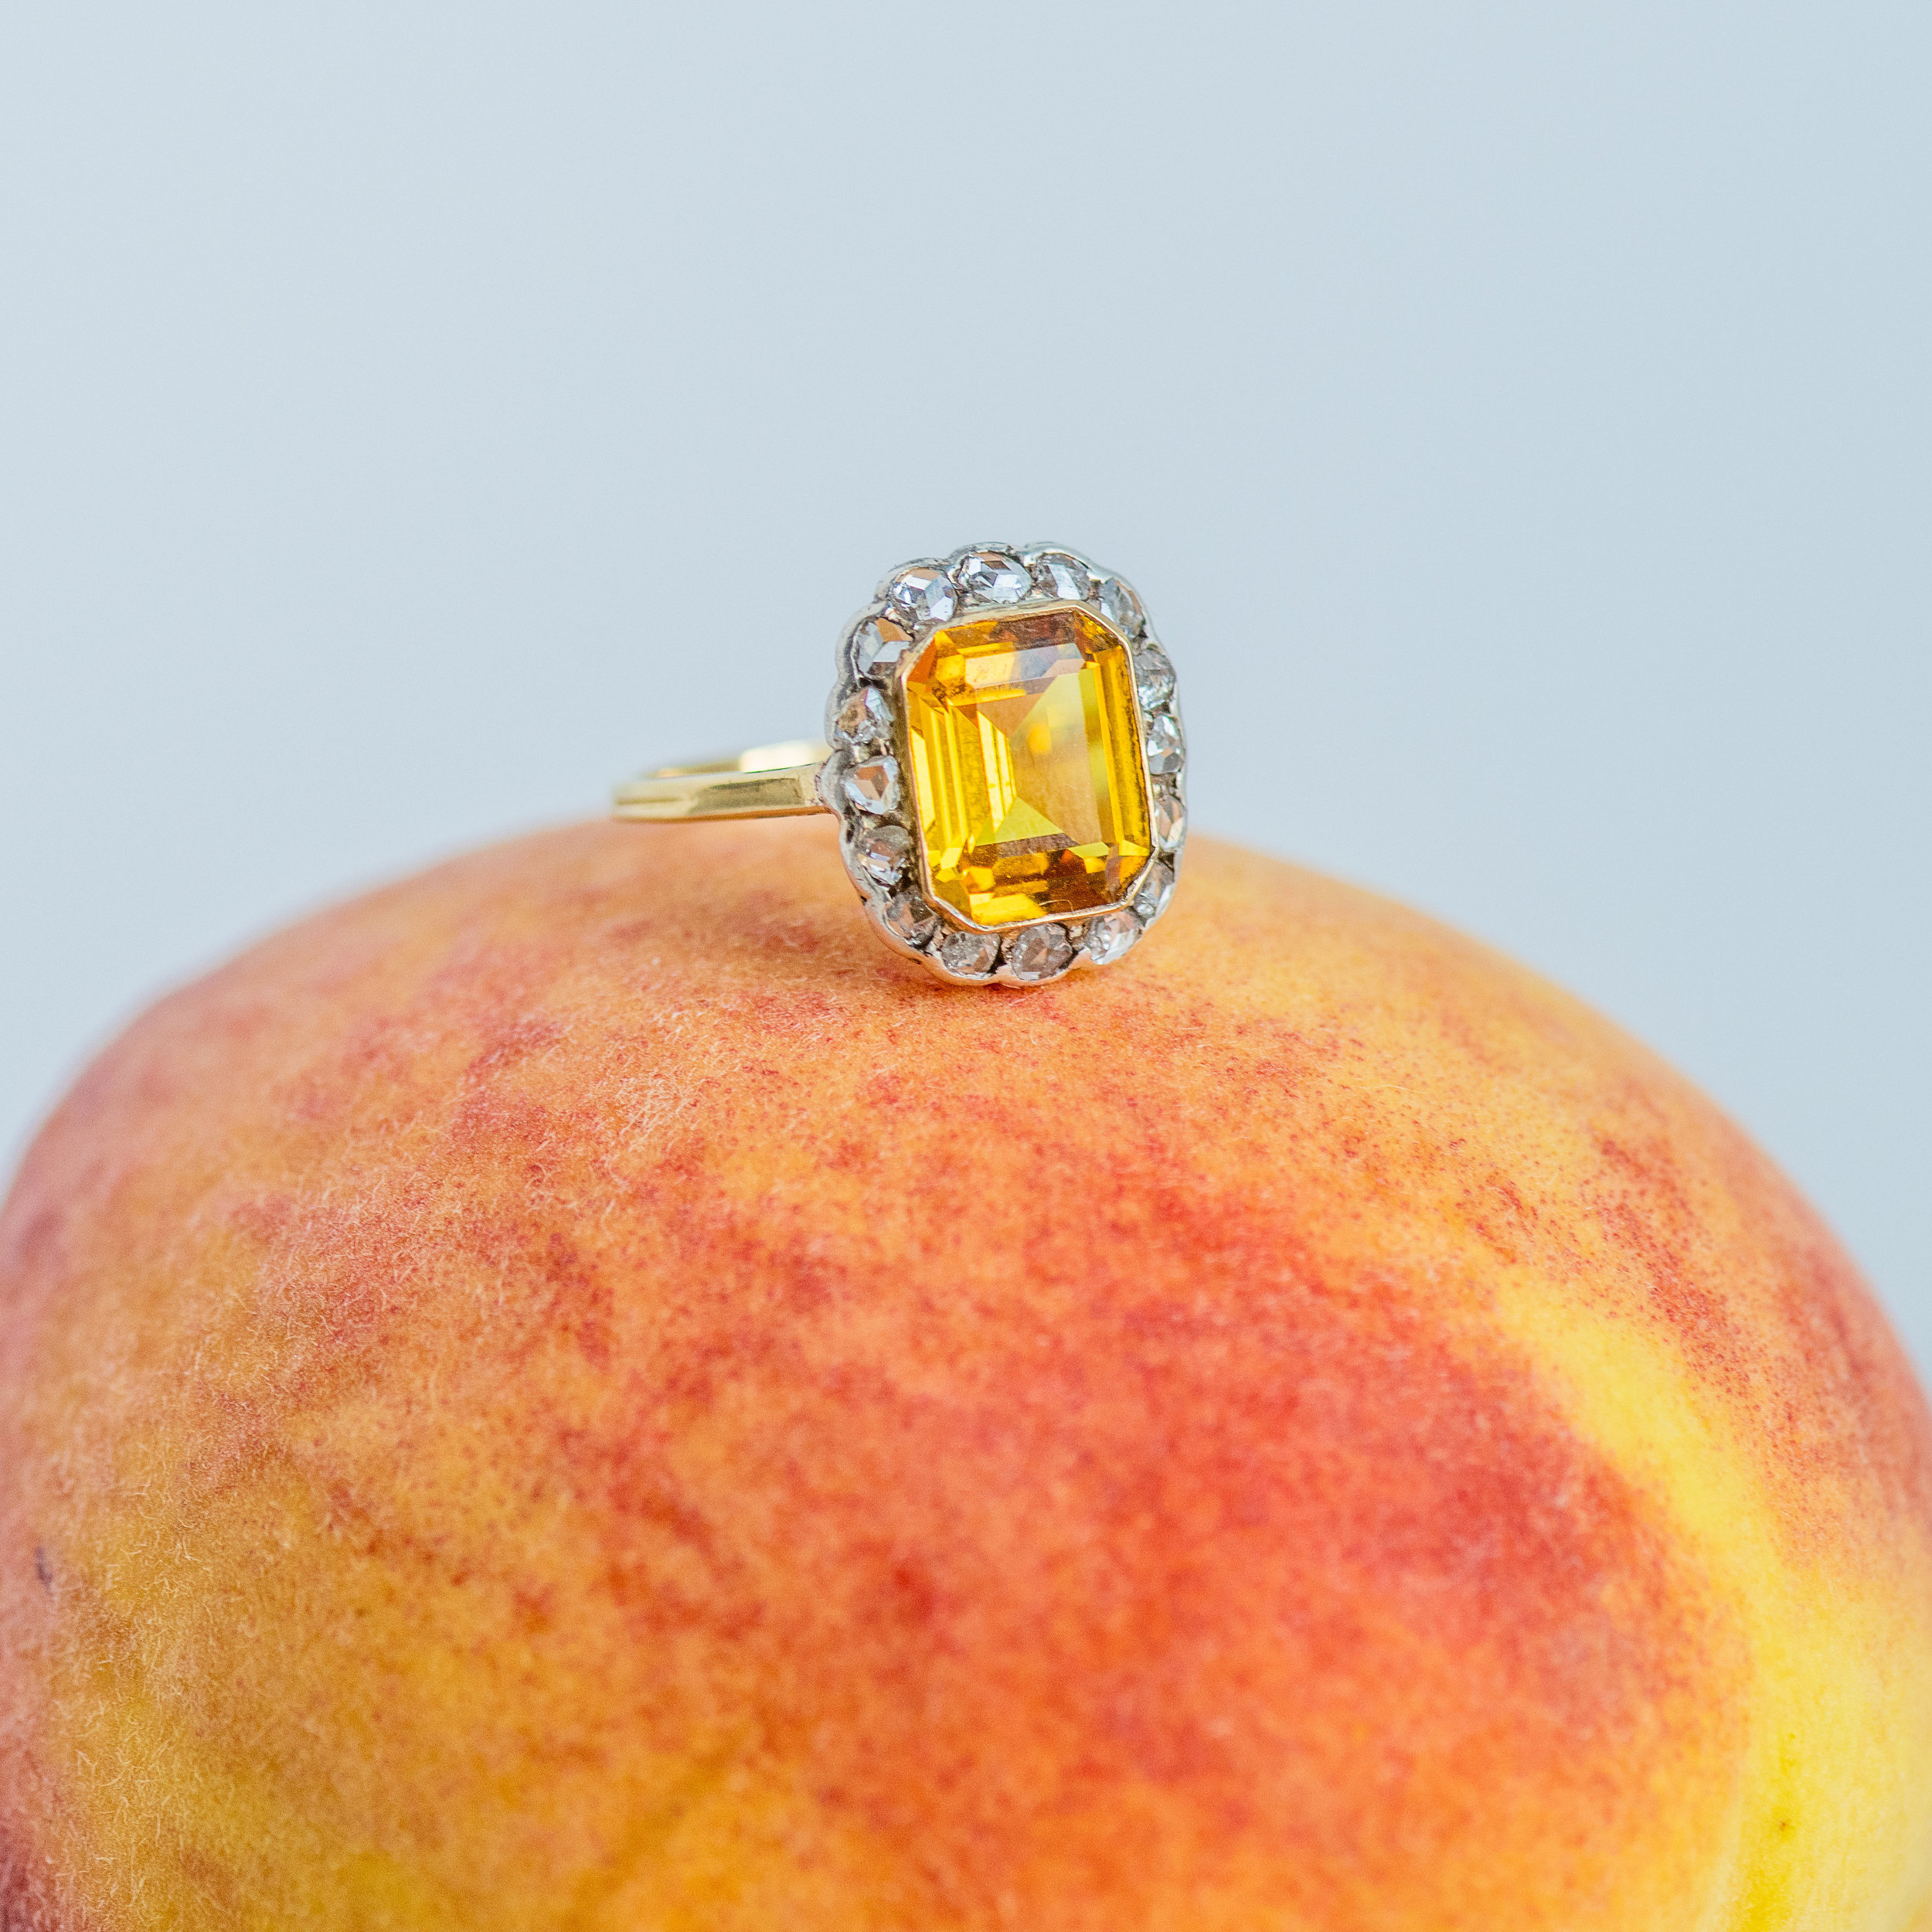 Pretty as a peach! Shop this stunning citrine and rose cut diamond ring  HERE .